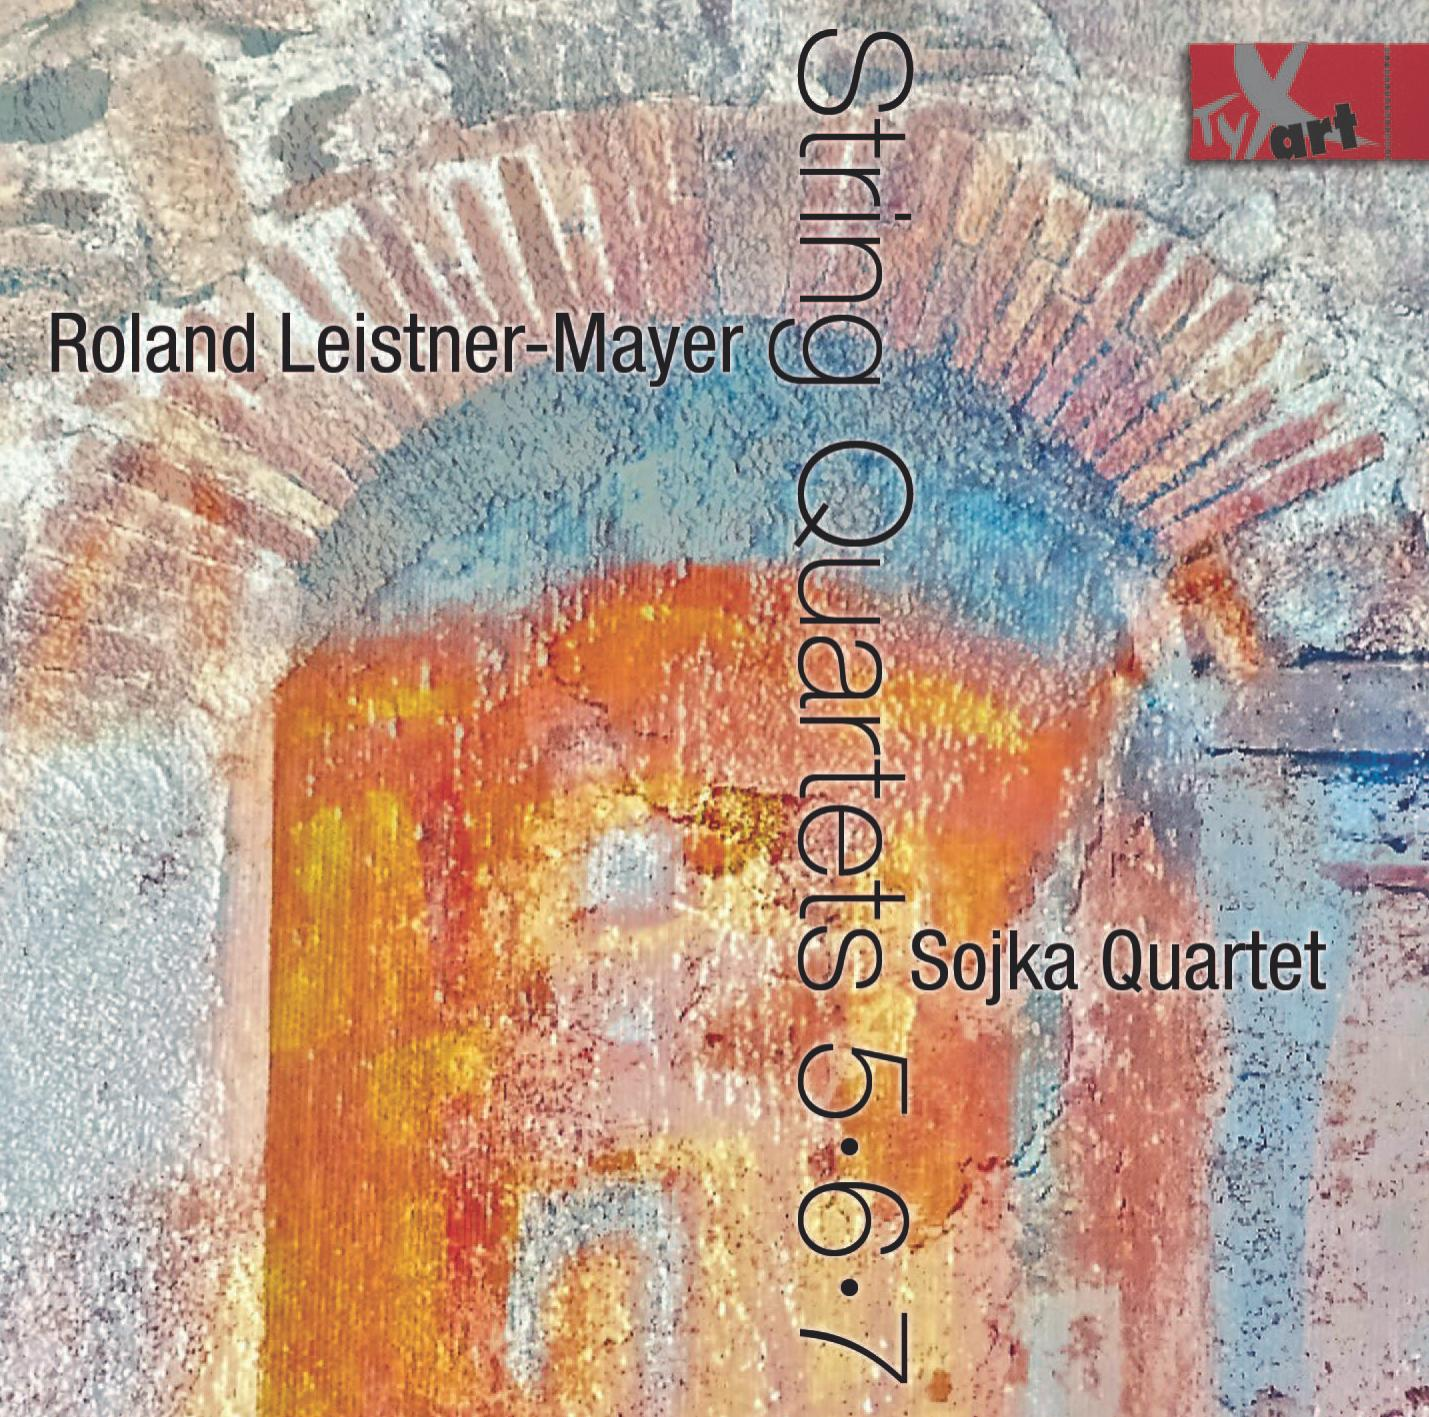 Sojka Quartet: String Quartets 5, 6, 7 - Roland Leistner-Mayer